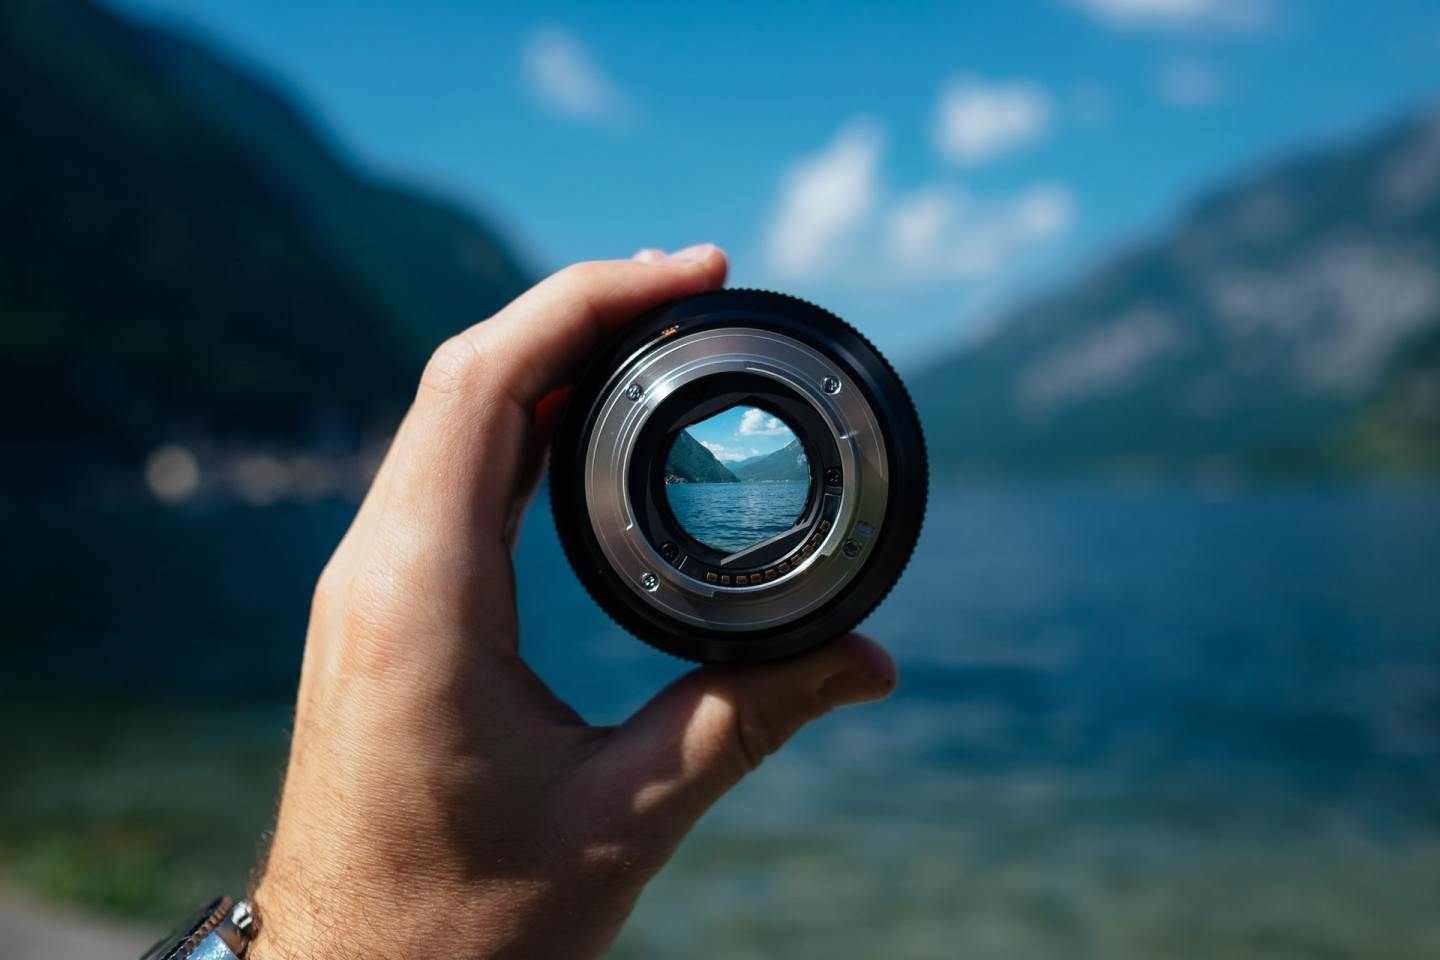 Person holding camera lens - Focus - represents fighting distractions